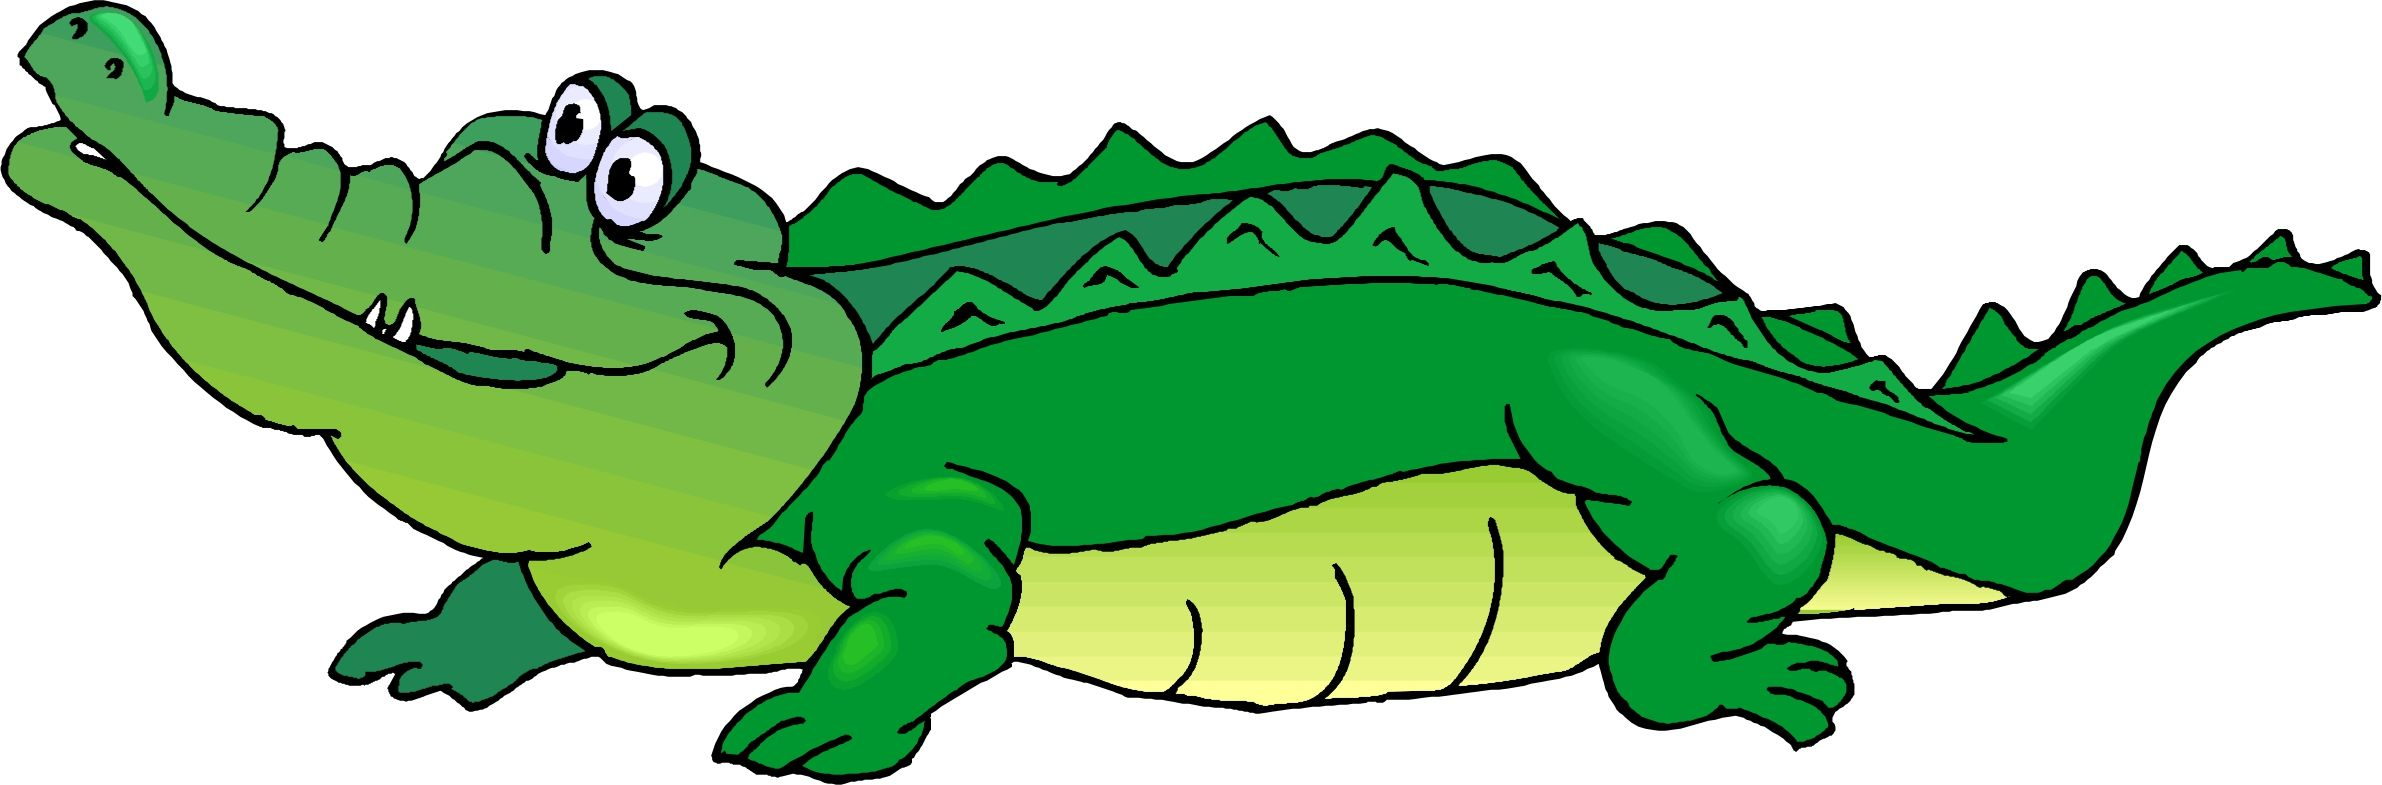 gator clip art use these free images for your websites art rh pinterest com Funny Alligator Clip Art Alligator Clip Art